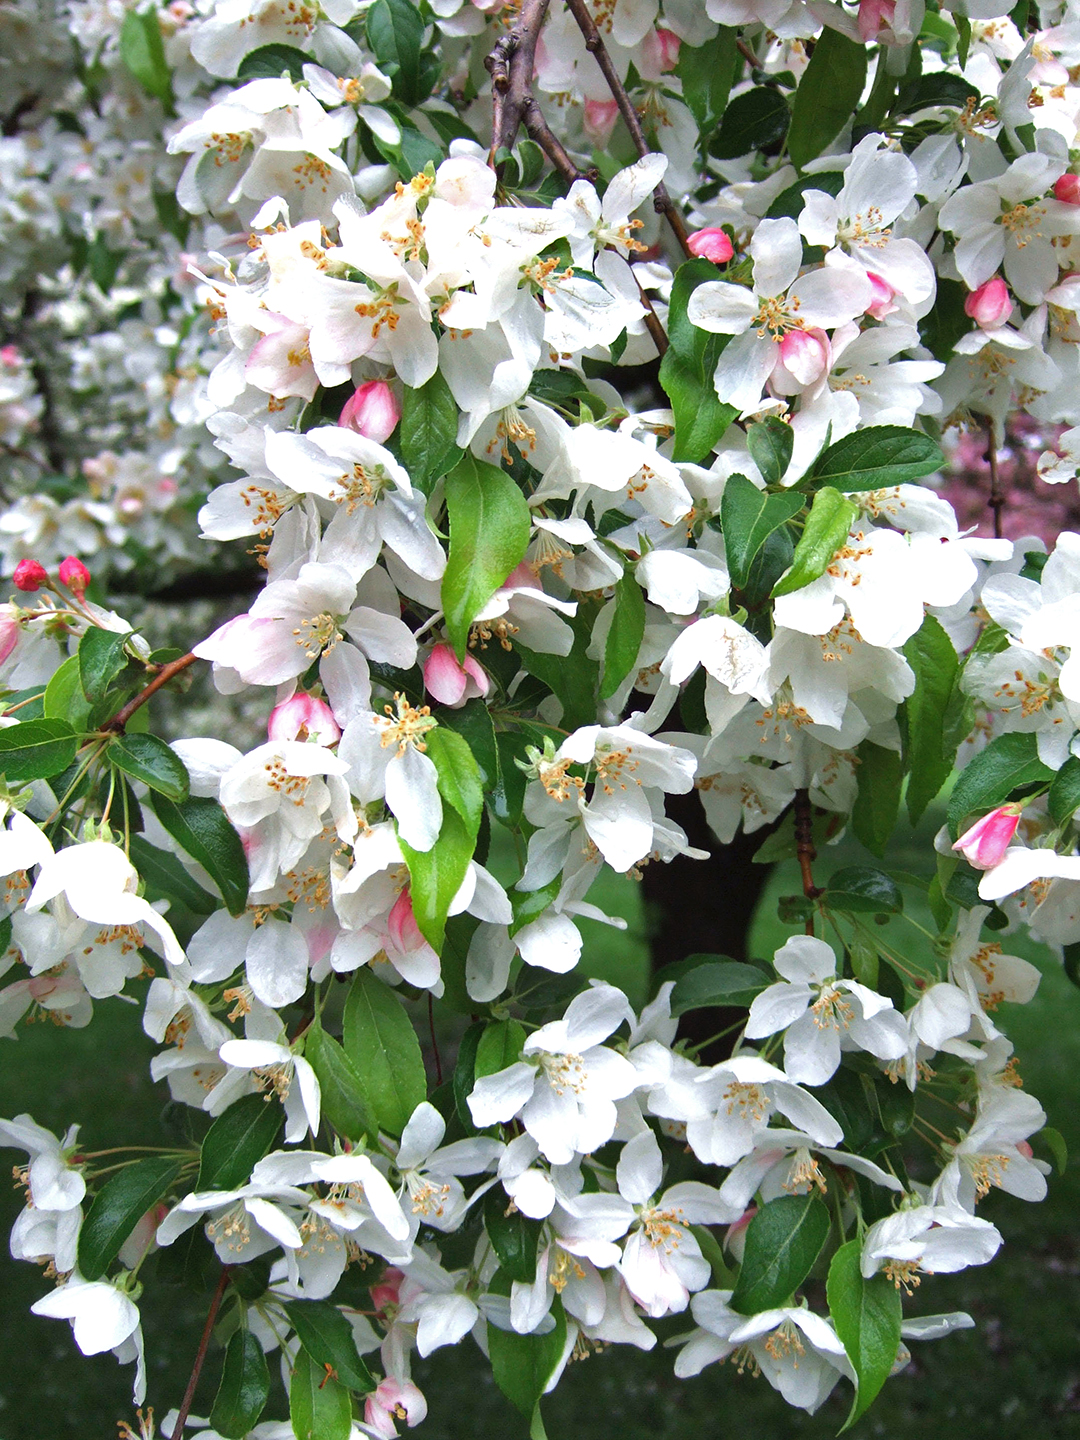 Molten Lava crabapple blooms white and pink